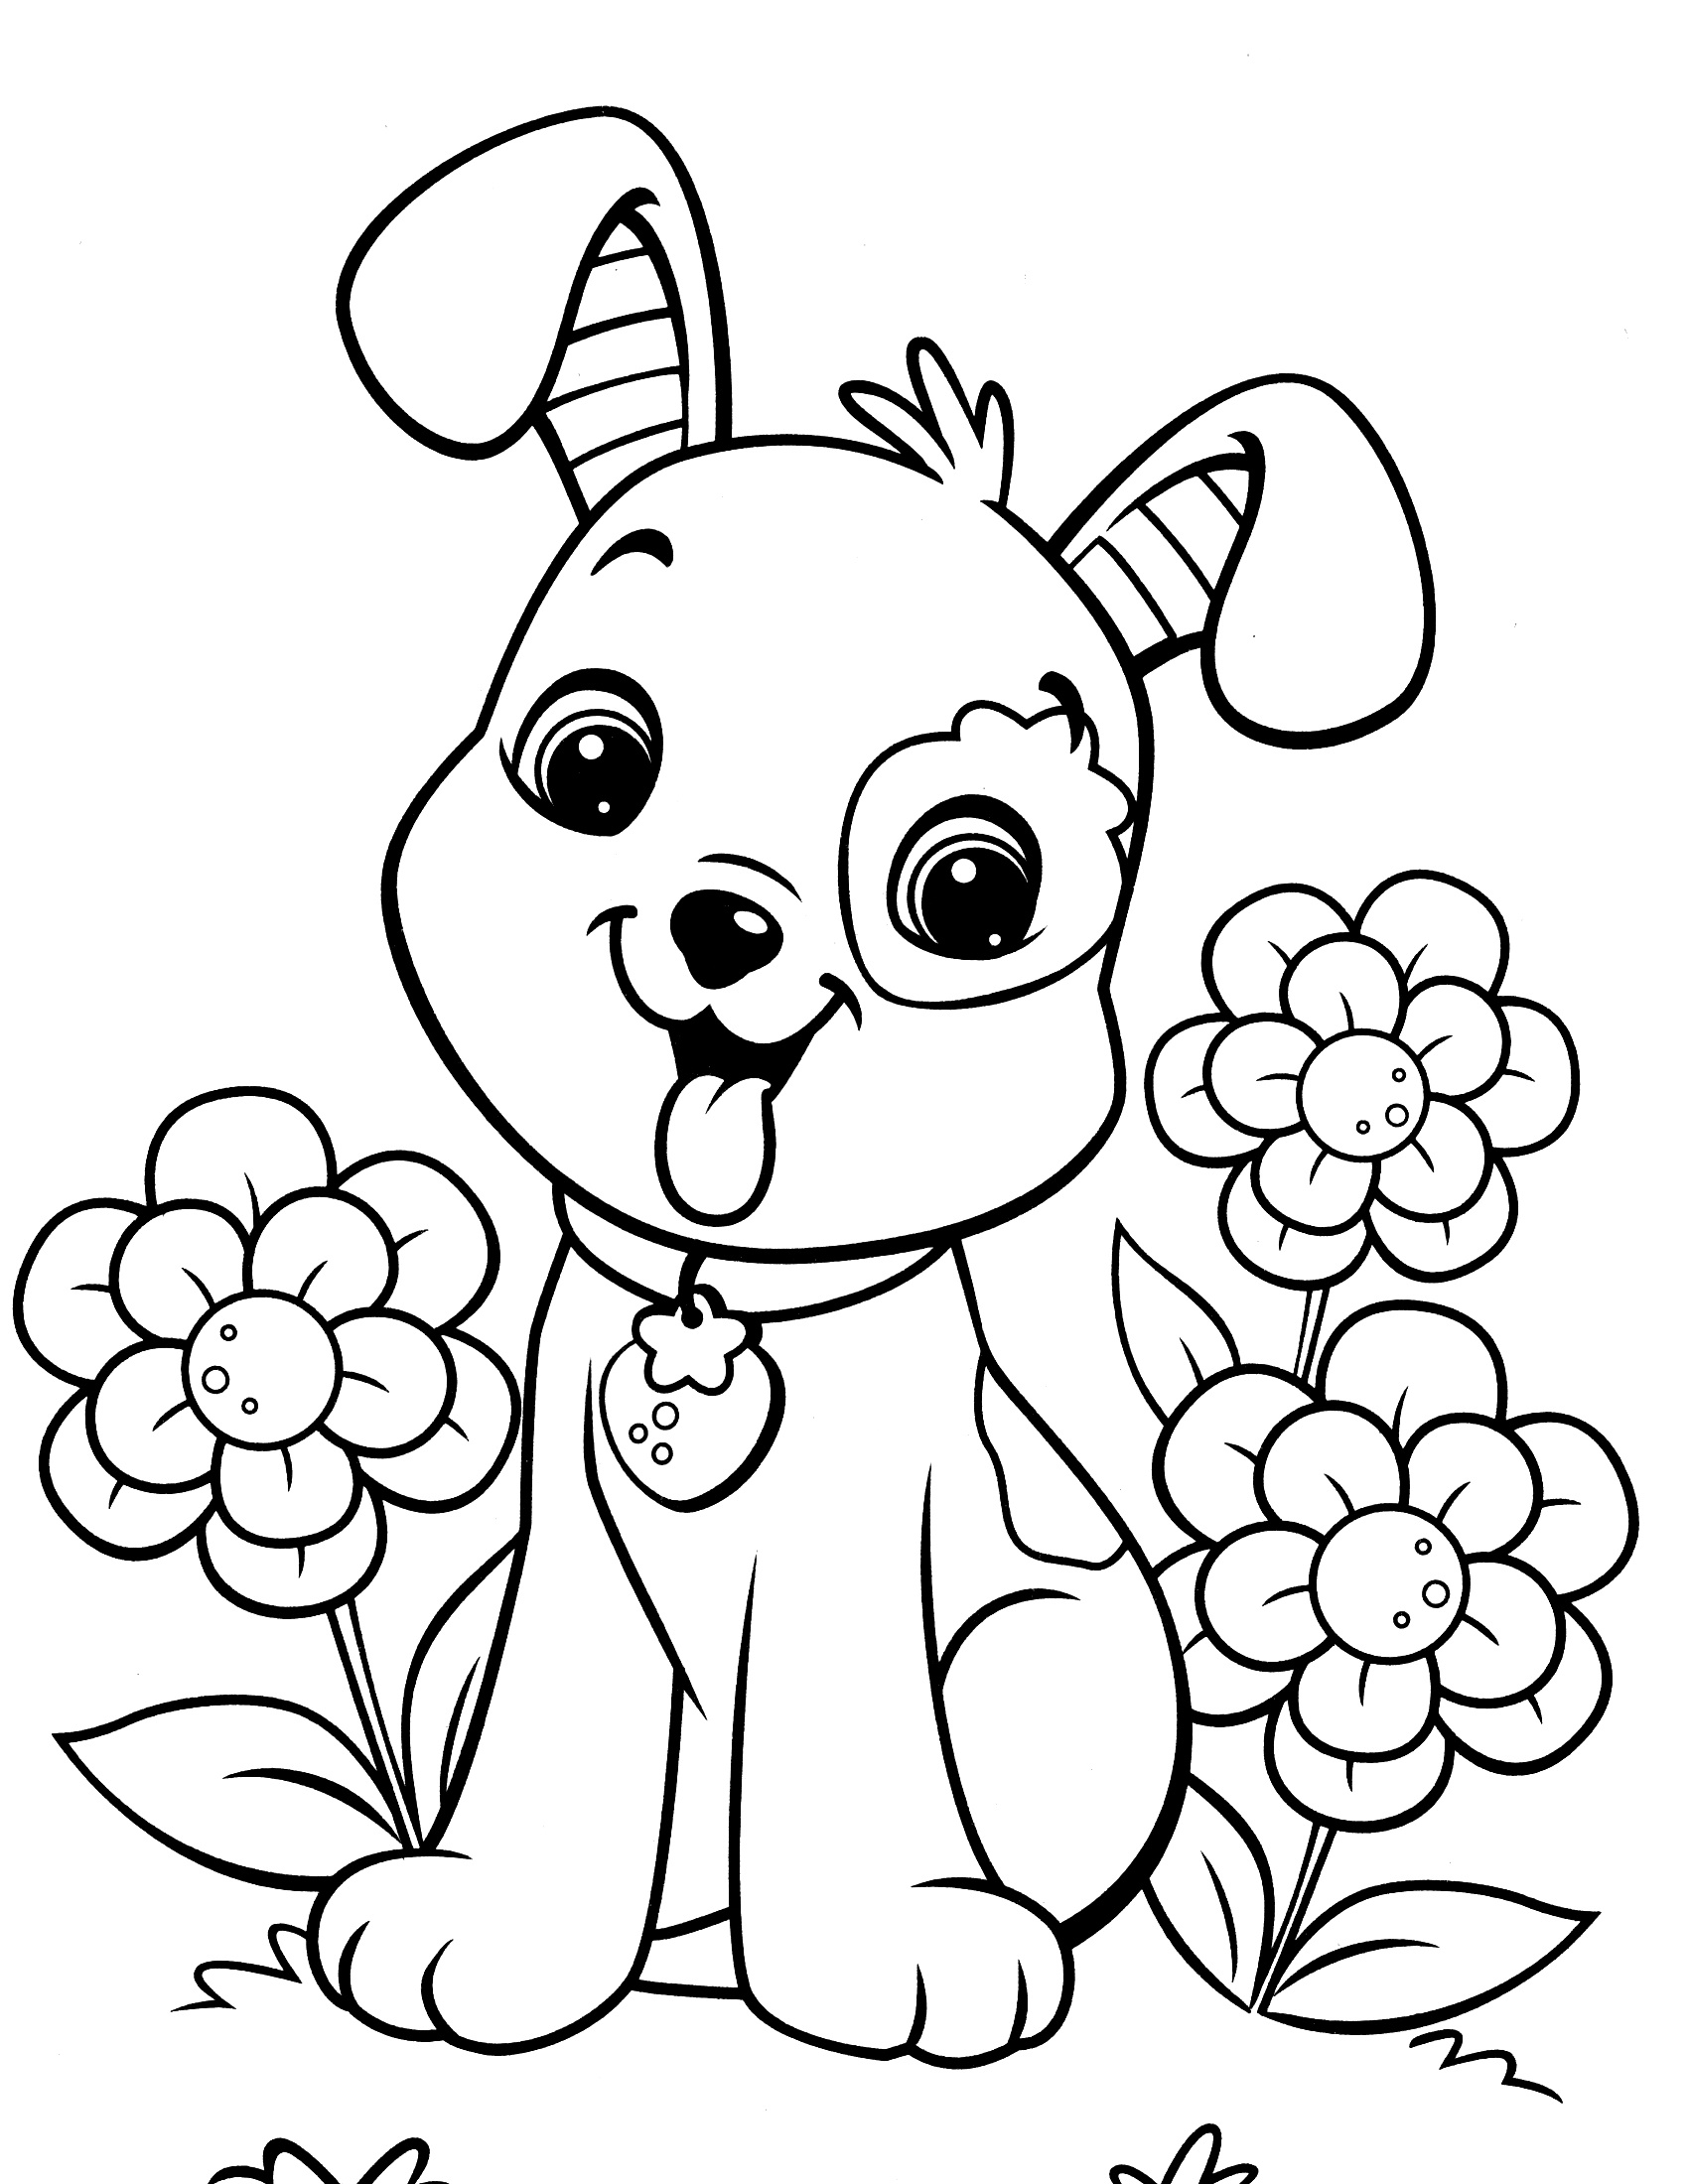 Dog Coloring Pages For Girls K5 Worksheets